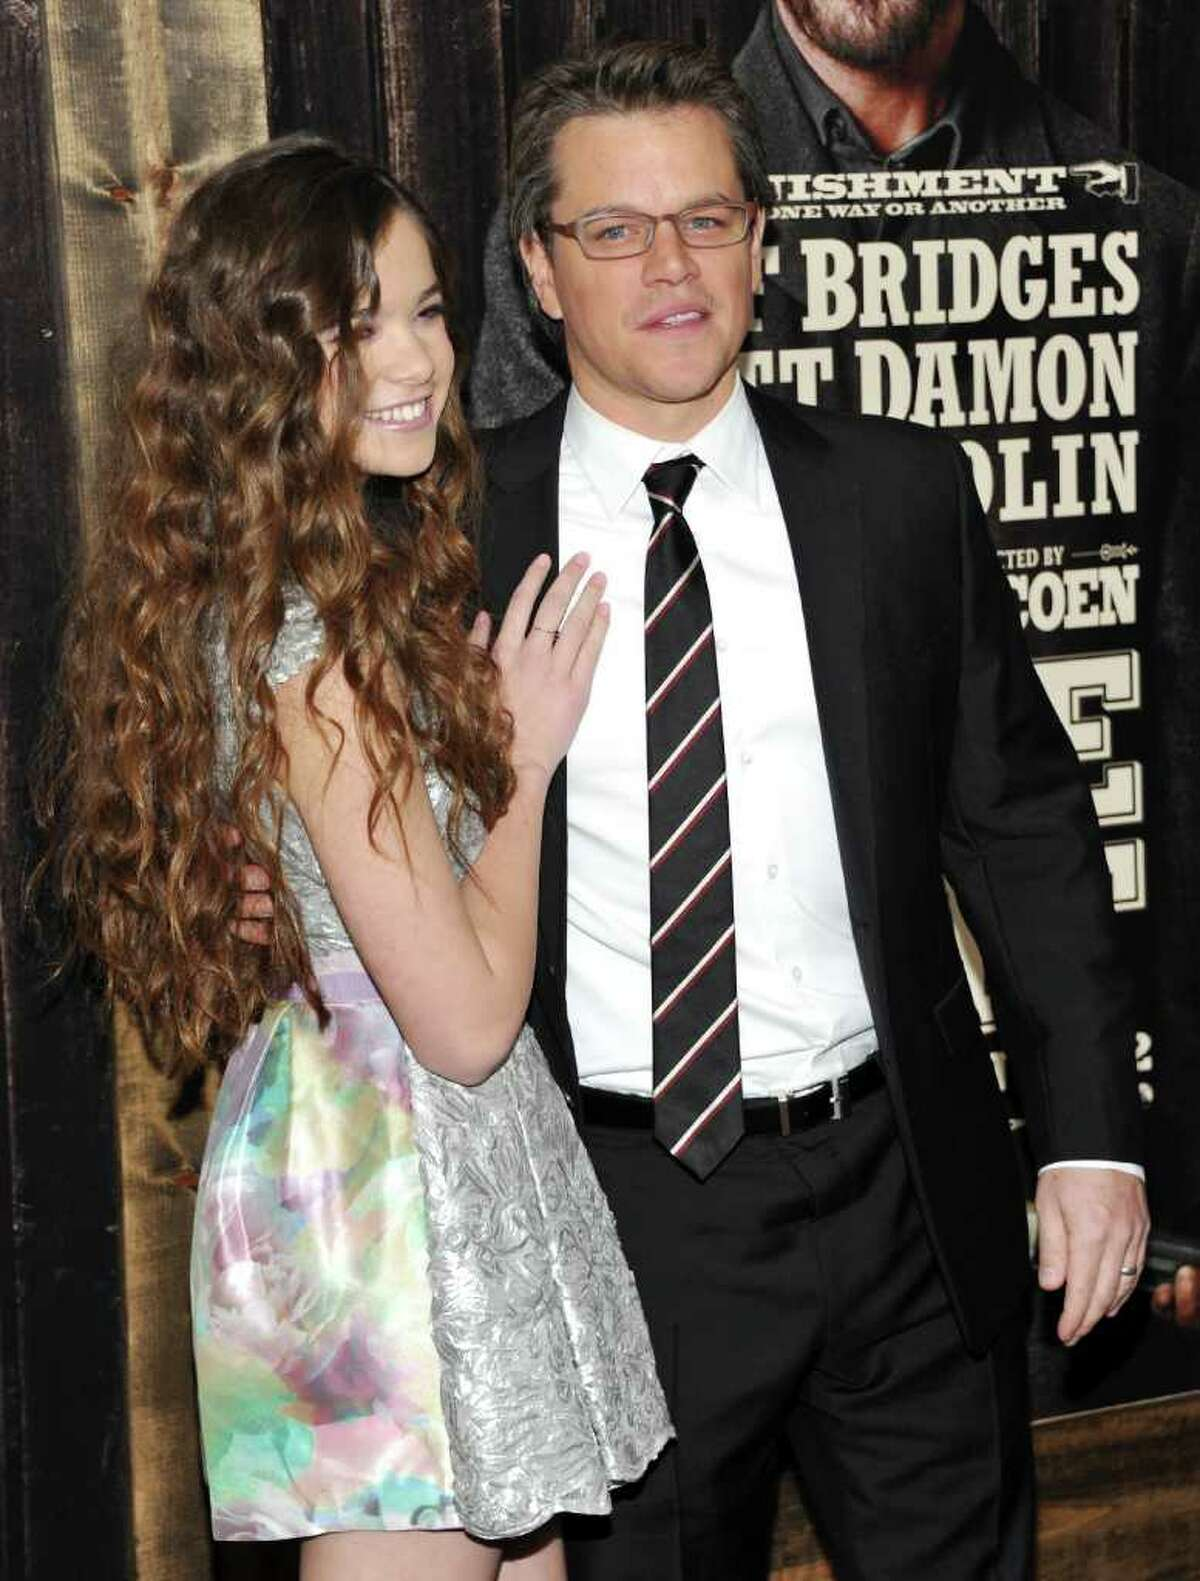 Actress Hailee Steinfeld, left, and actor Matt Damon attend the premiere of 'True Grit' at the Ziegfeld Theatre on Tuesday, Dec. 14, 2010 in New York. (AP Photo/Evan Agostini)